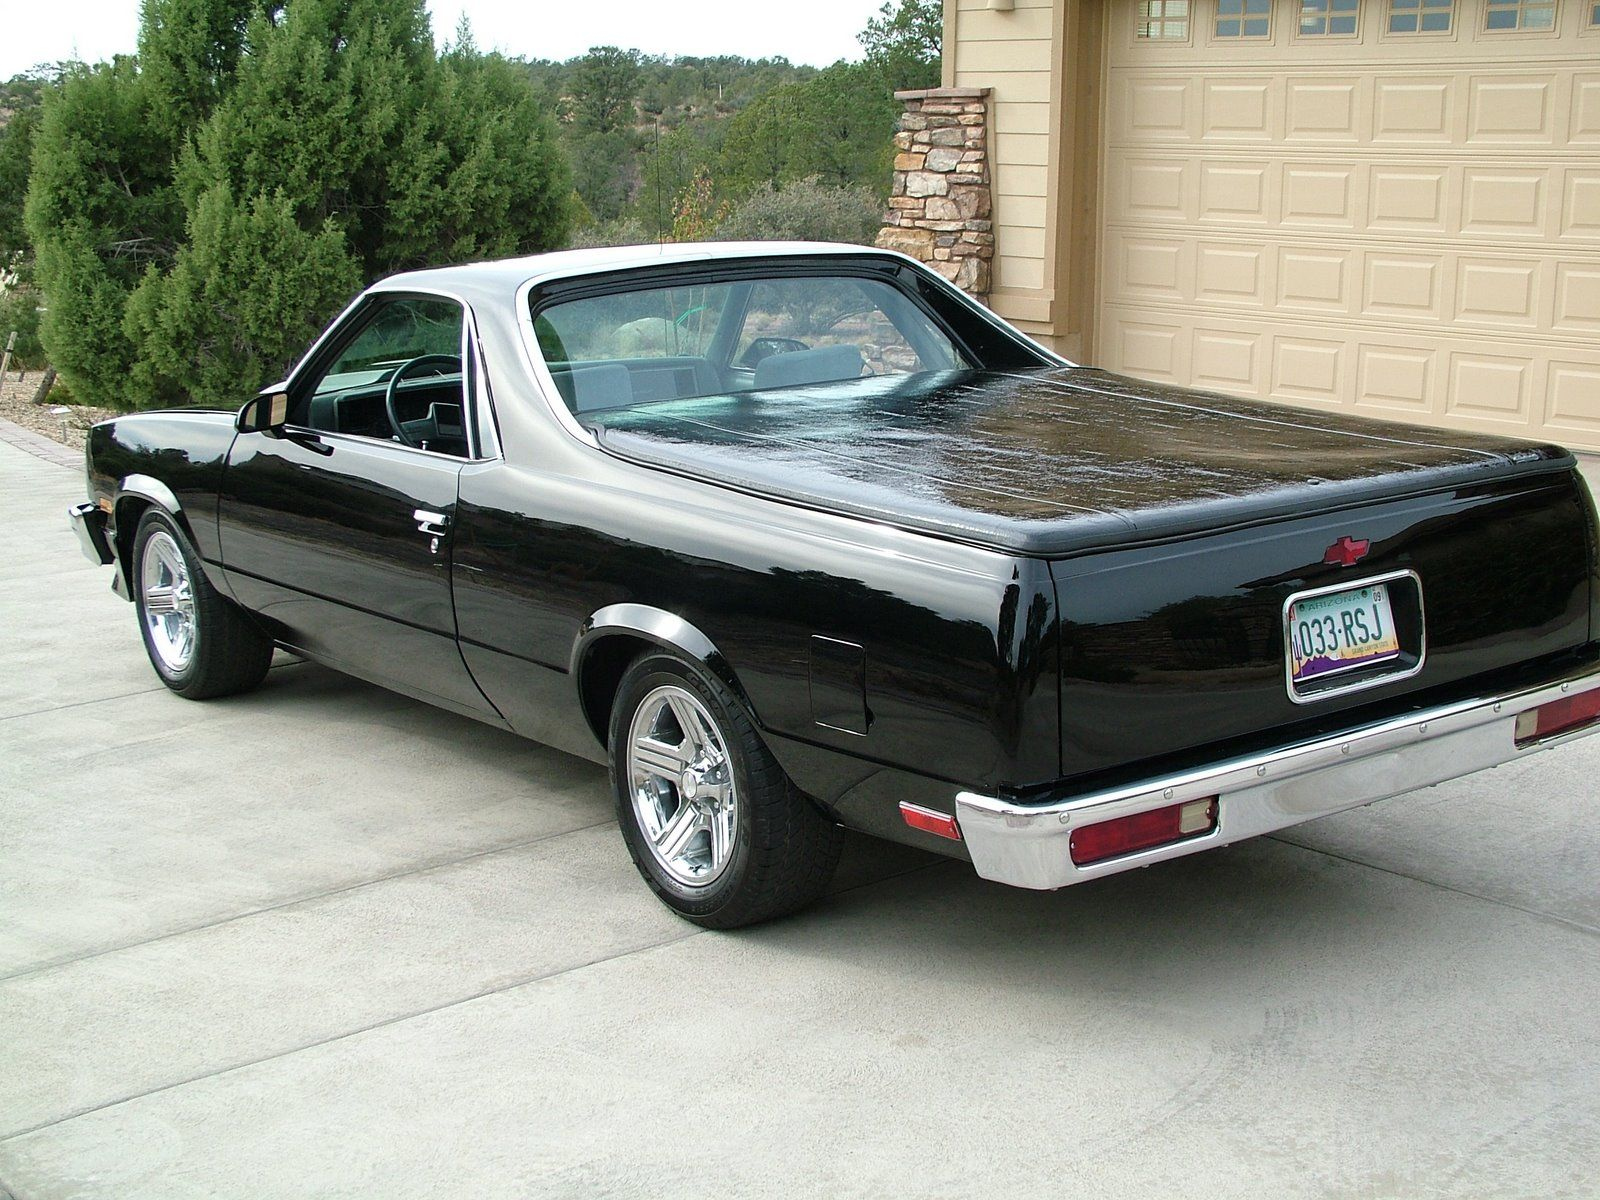 On my bucket list is to own an el camino once again i owned a and 1985 el camino i miss them